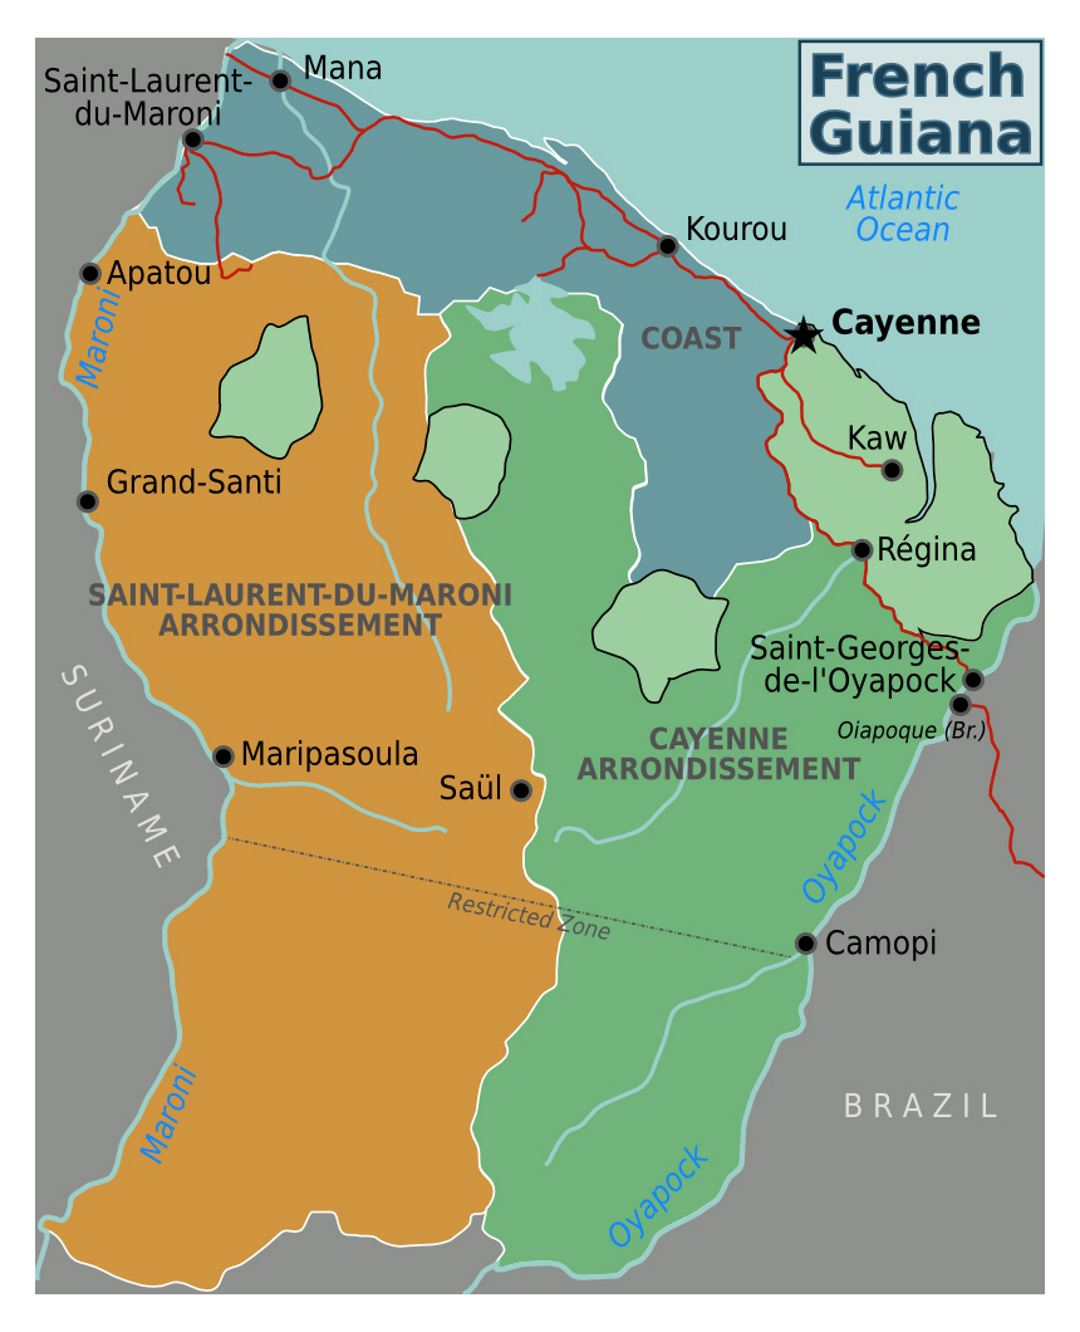 Detailed regions map of French Guiana